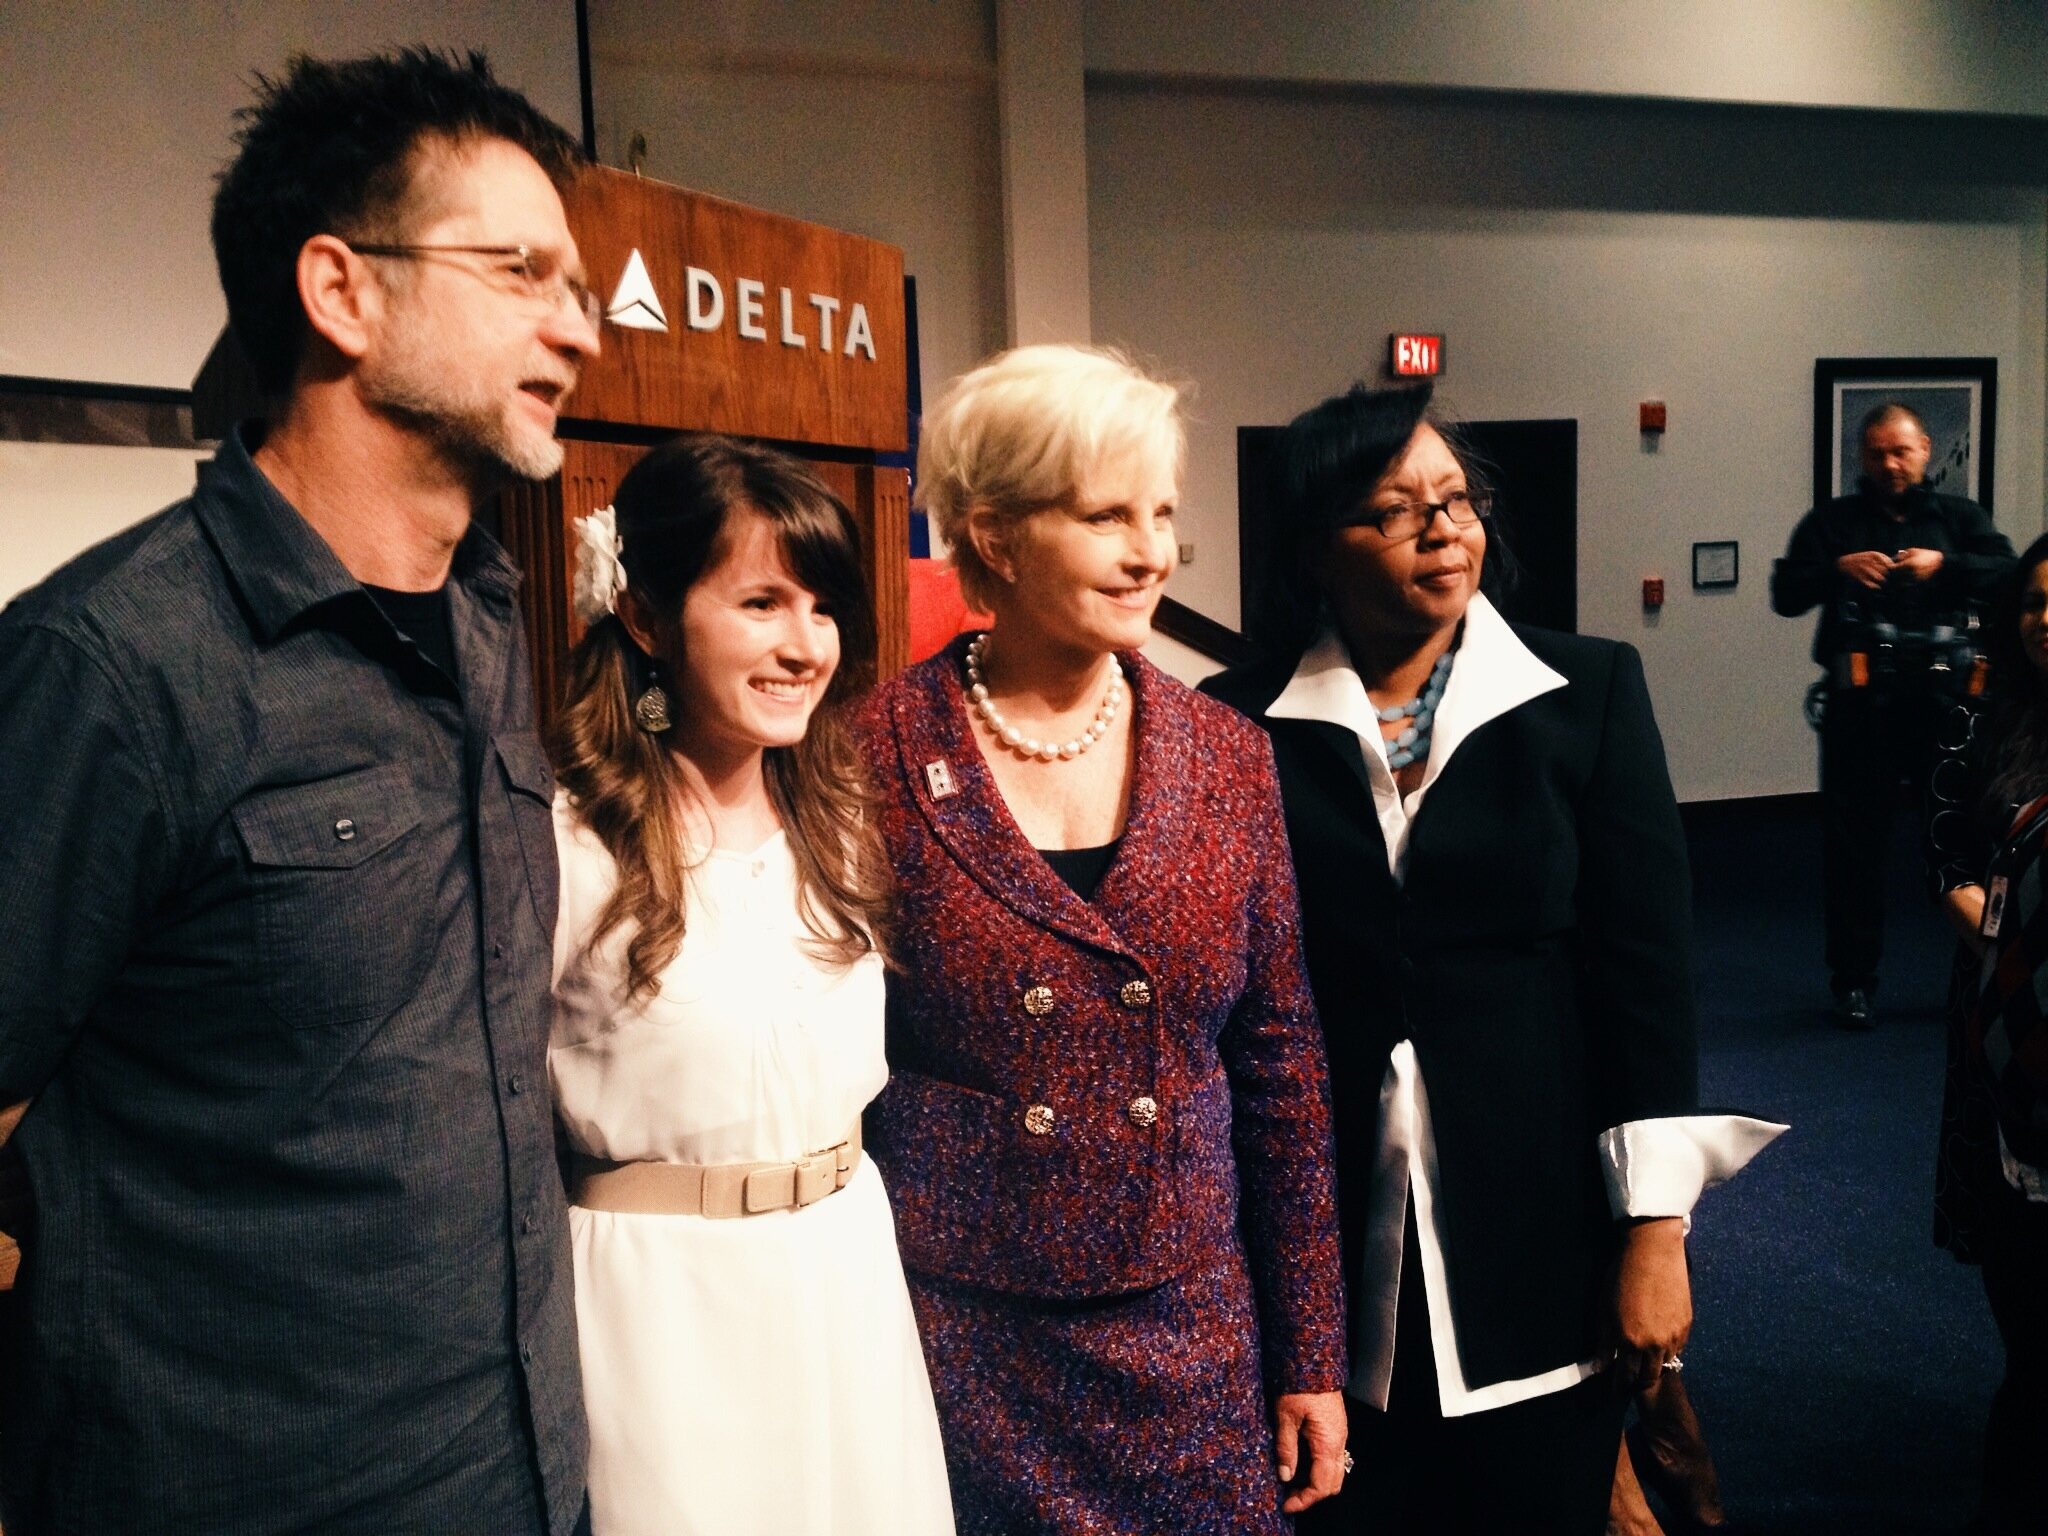 """2014 - AFTER SINGING """"BREAK THE CHAINS"""" AT DELTA"""